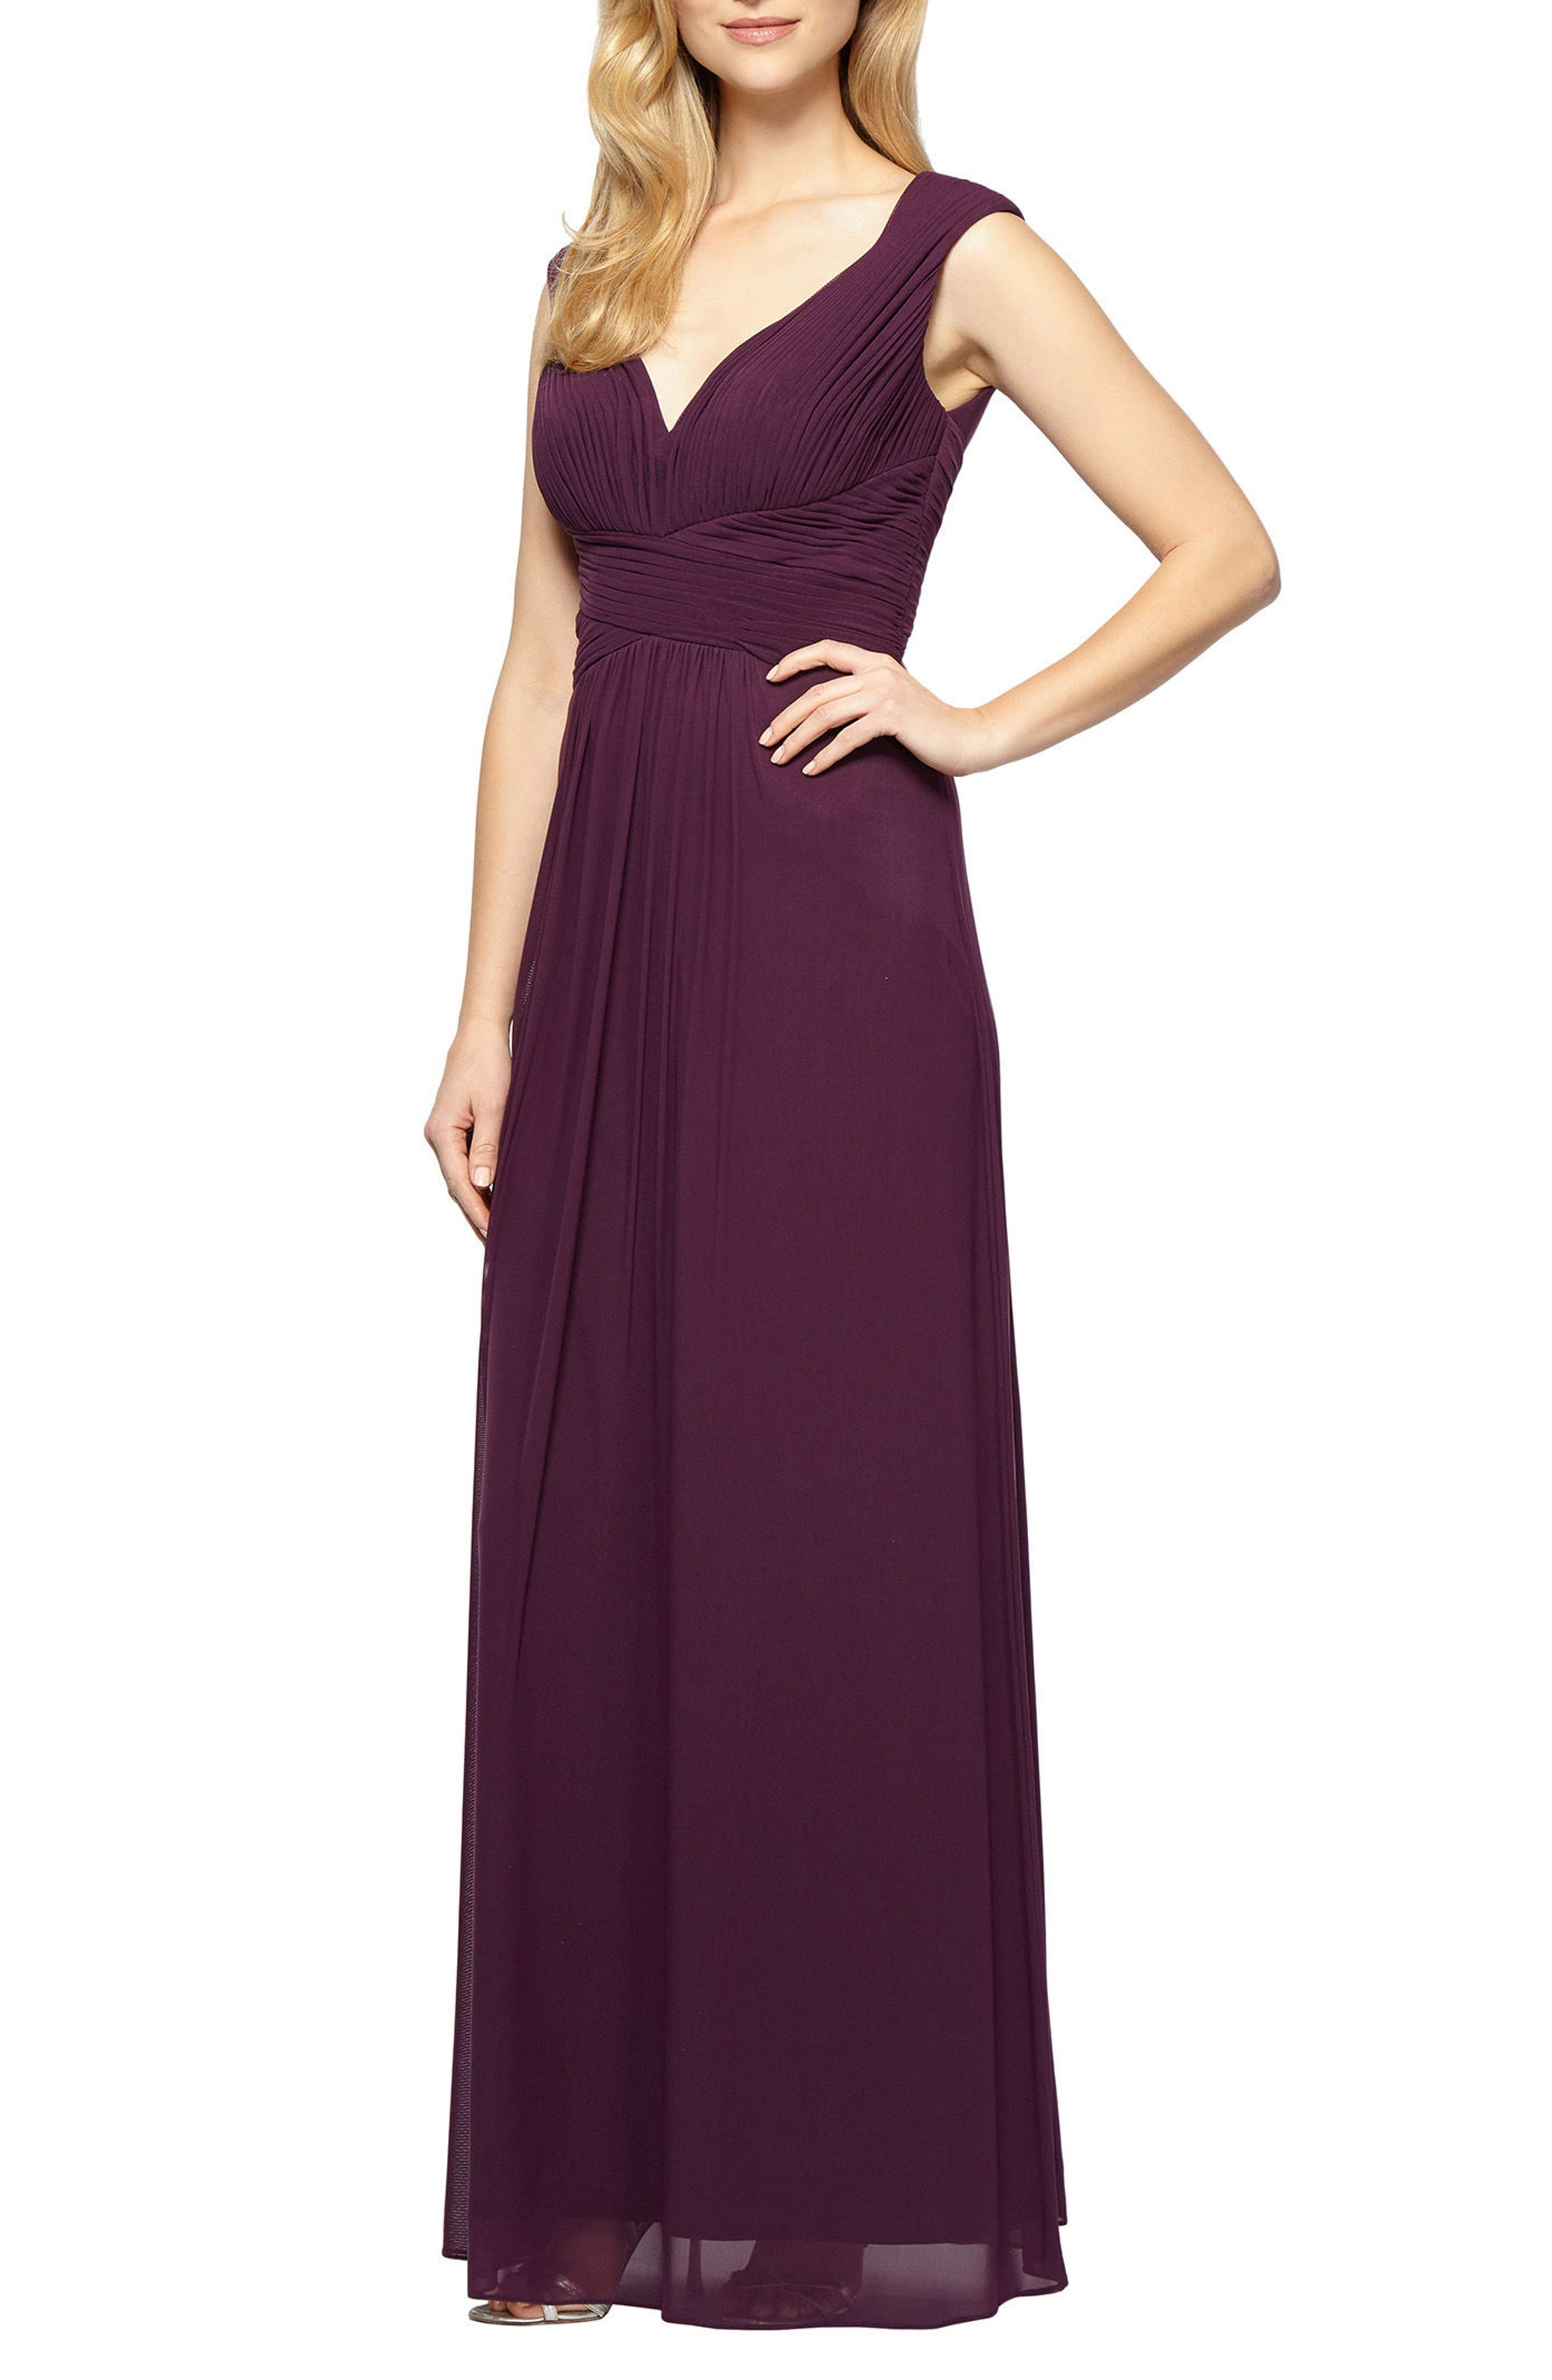 A-Line Gown,                             Main thumbnail 1, color,                             Plum